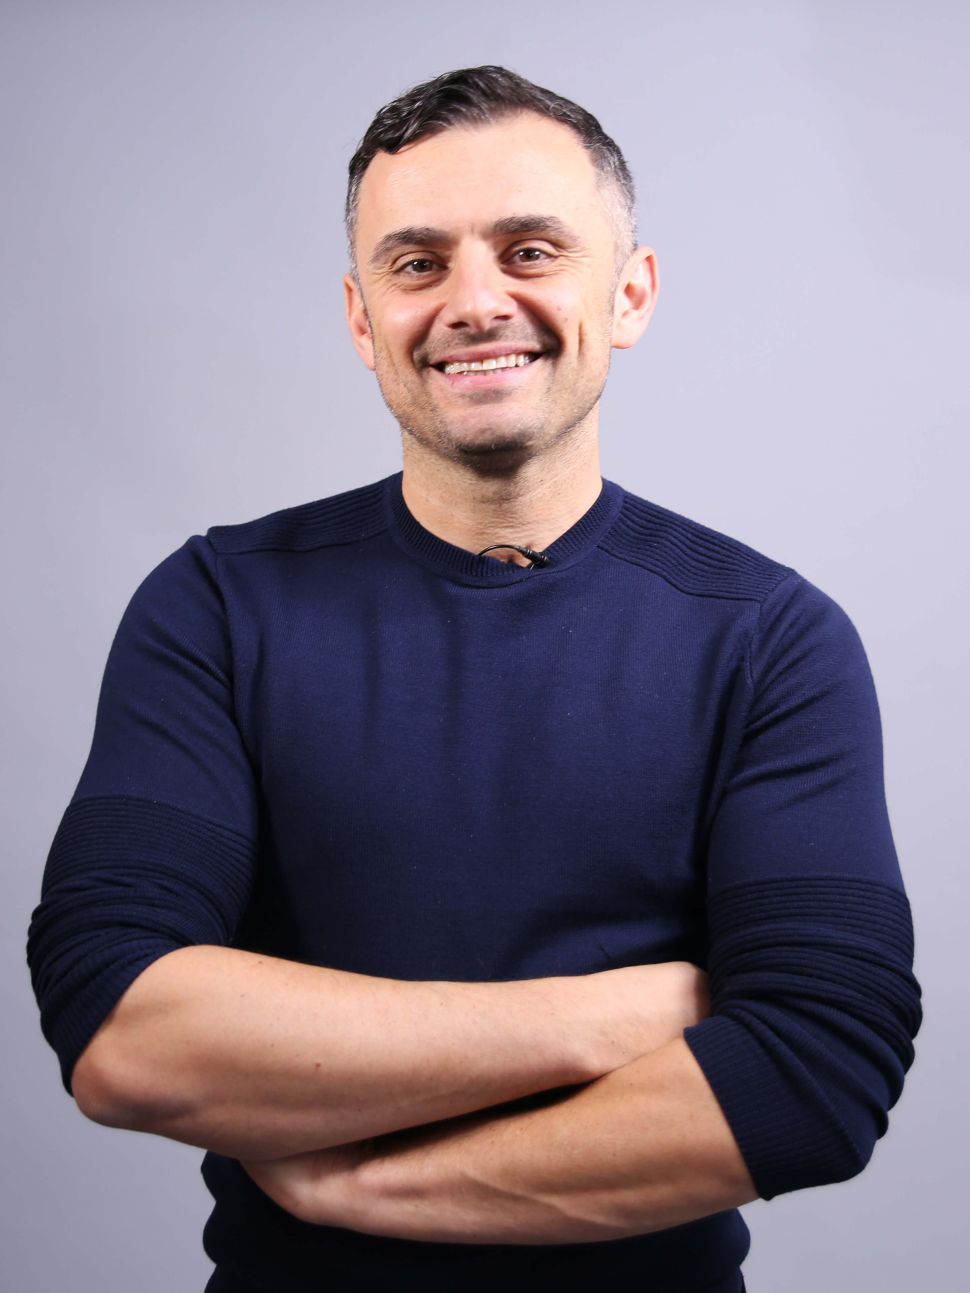 EXCLUSIVE: Gary Vaynerchuk on Business, Life and Building Human Empires